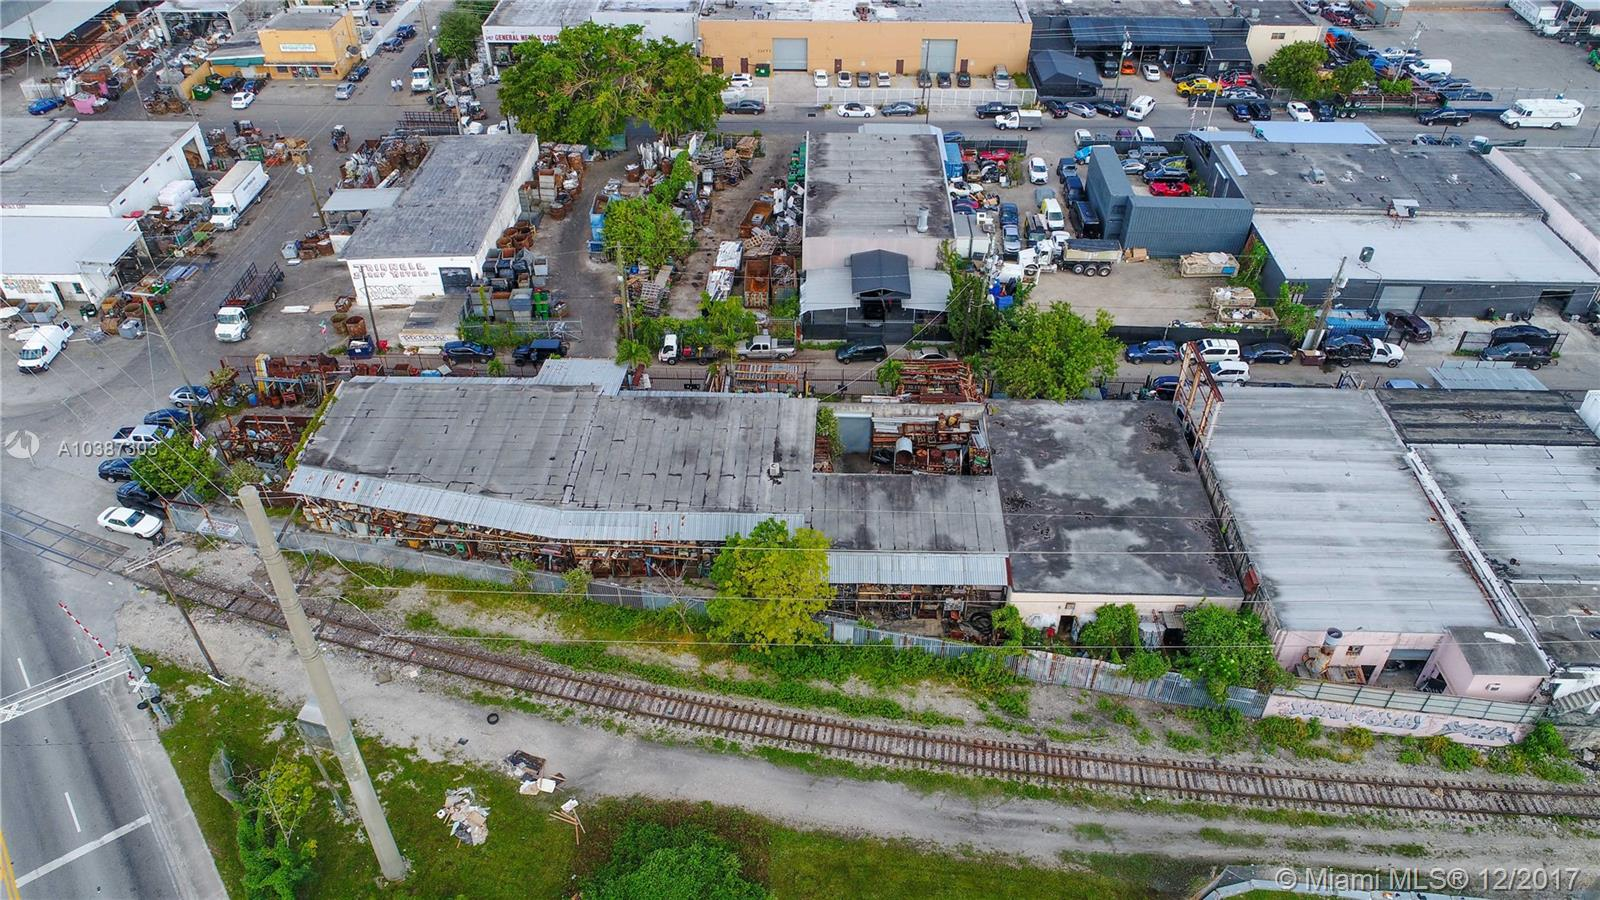 3060 NW 23 Terrace, Miami, Florida 33142, ,Commercial Sale,For Sale,3060 NW 23 Terrace,A10387303